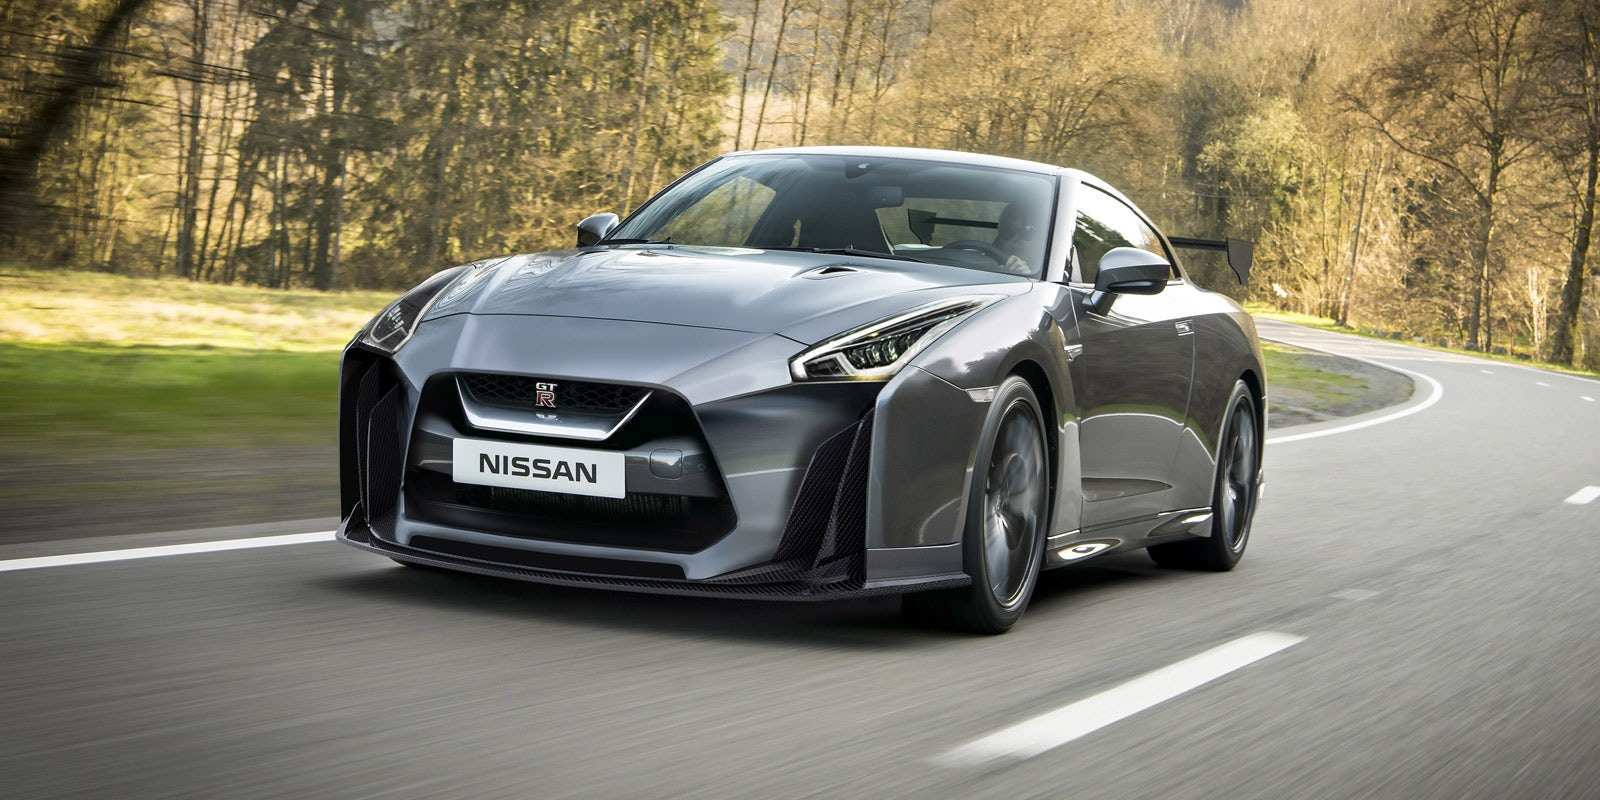 81 All New 2020 Nissan GT R Concept